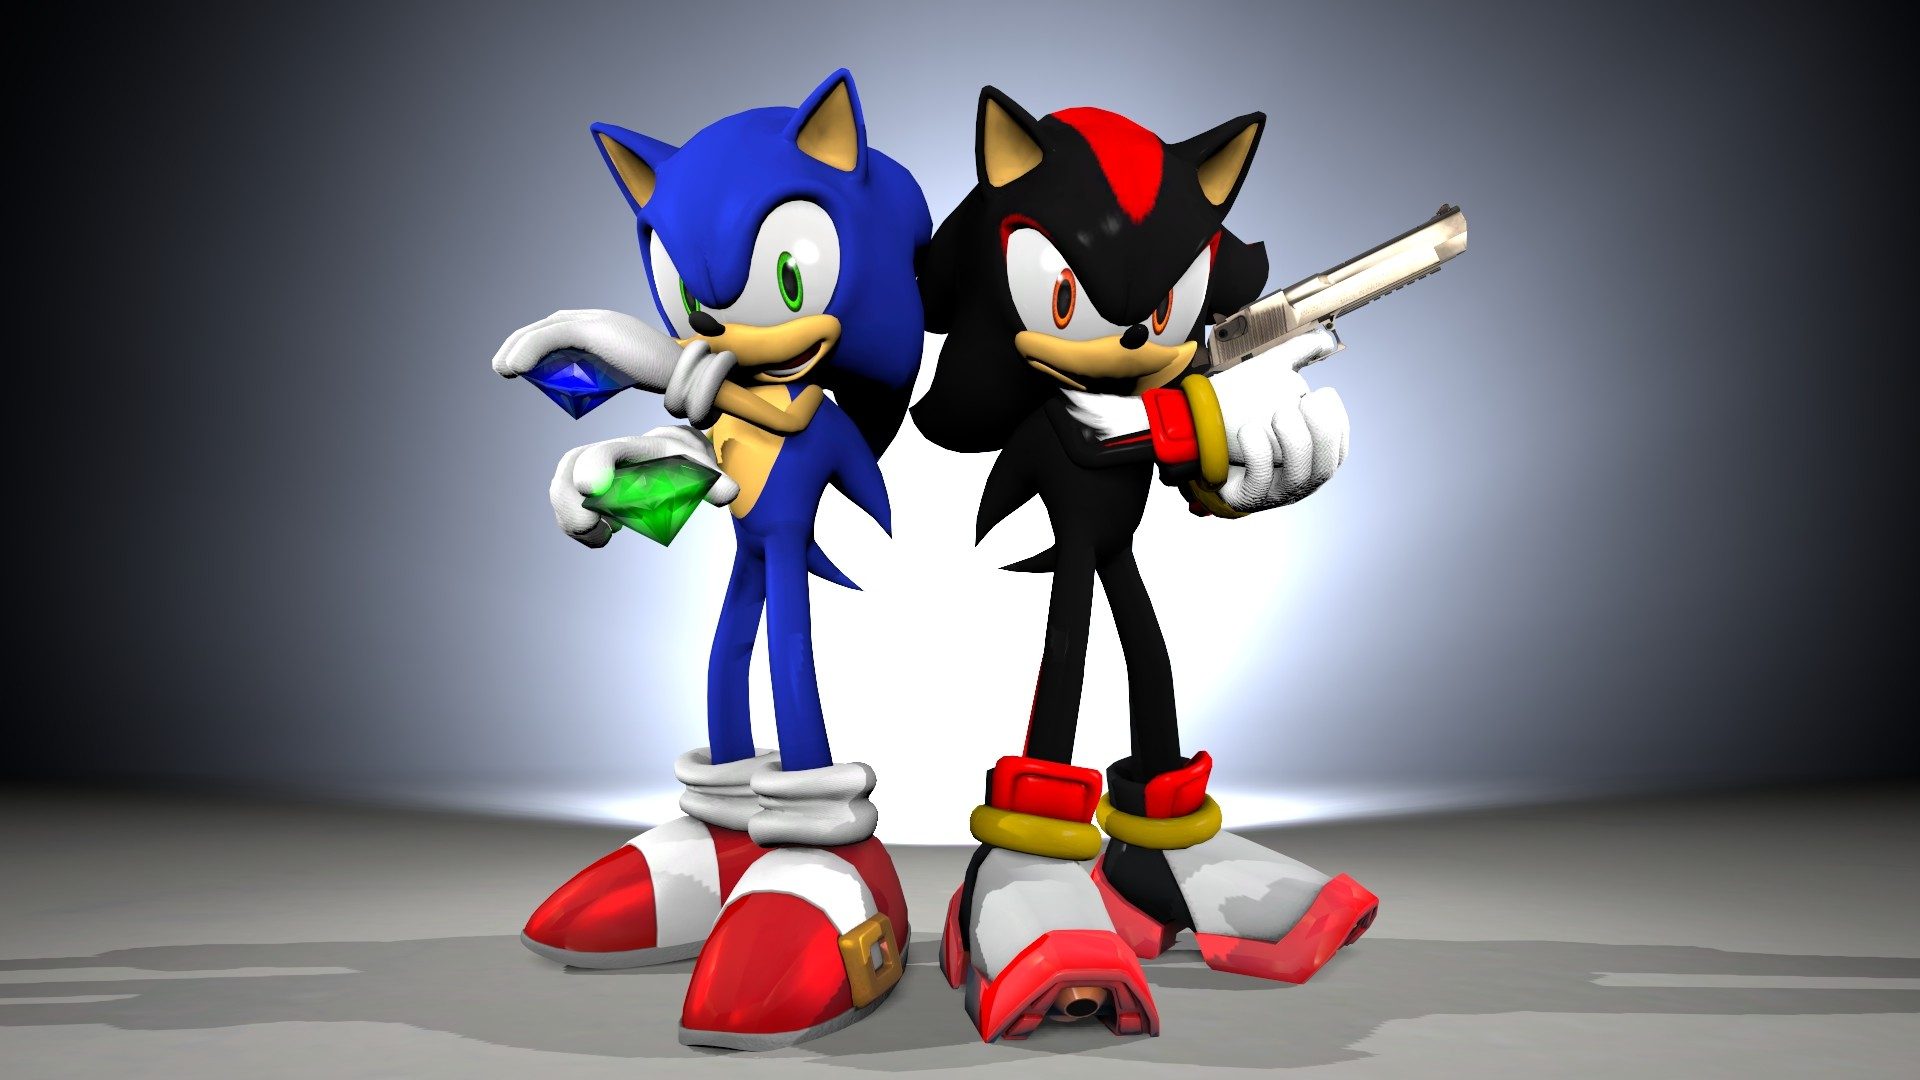 1920x1080 ... Sonic n' Shadow [Wallpaper Attempt] by TheRiverKruse